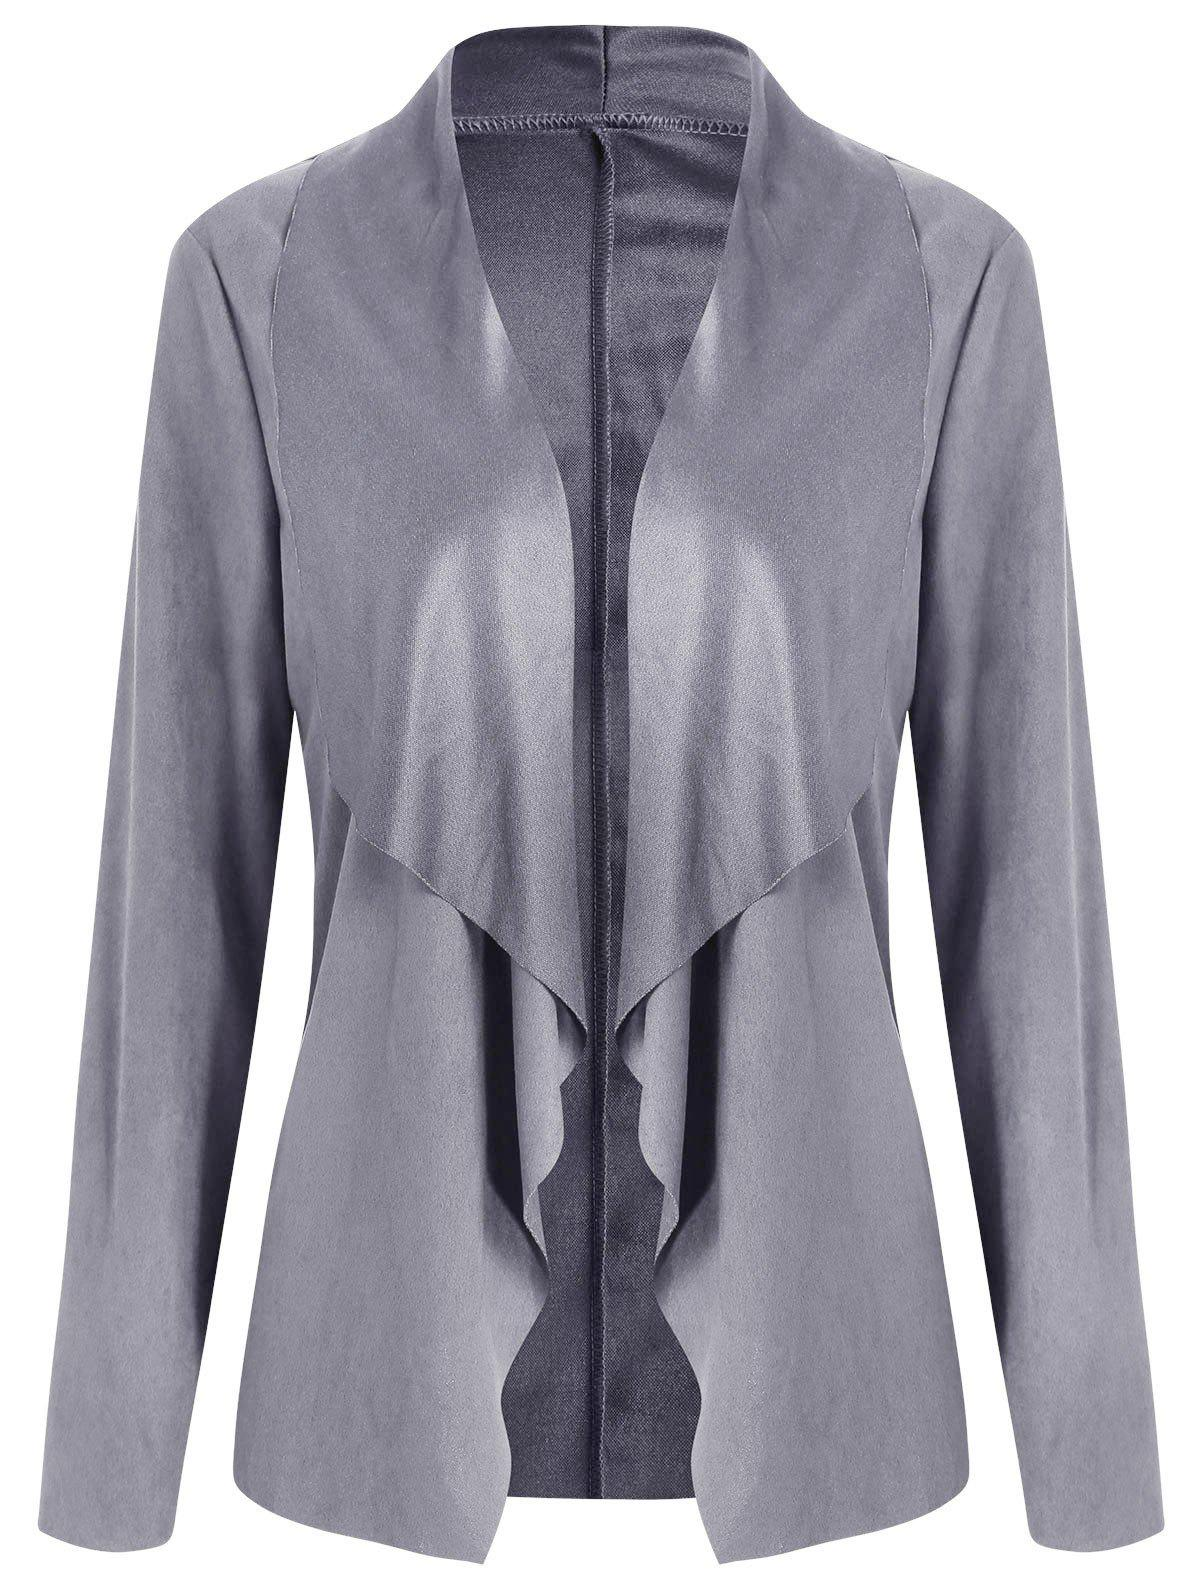 Open Front Draped Cardigan - GRAY L